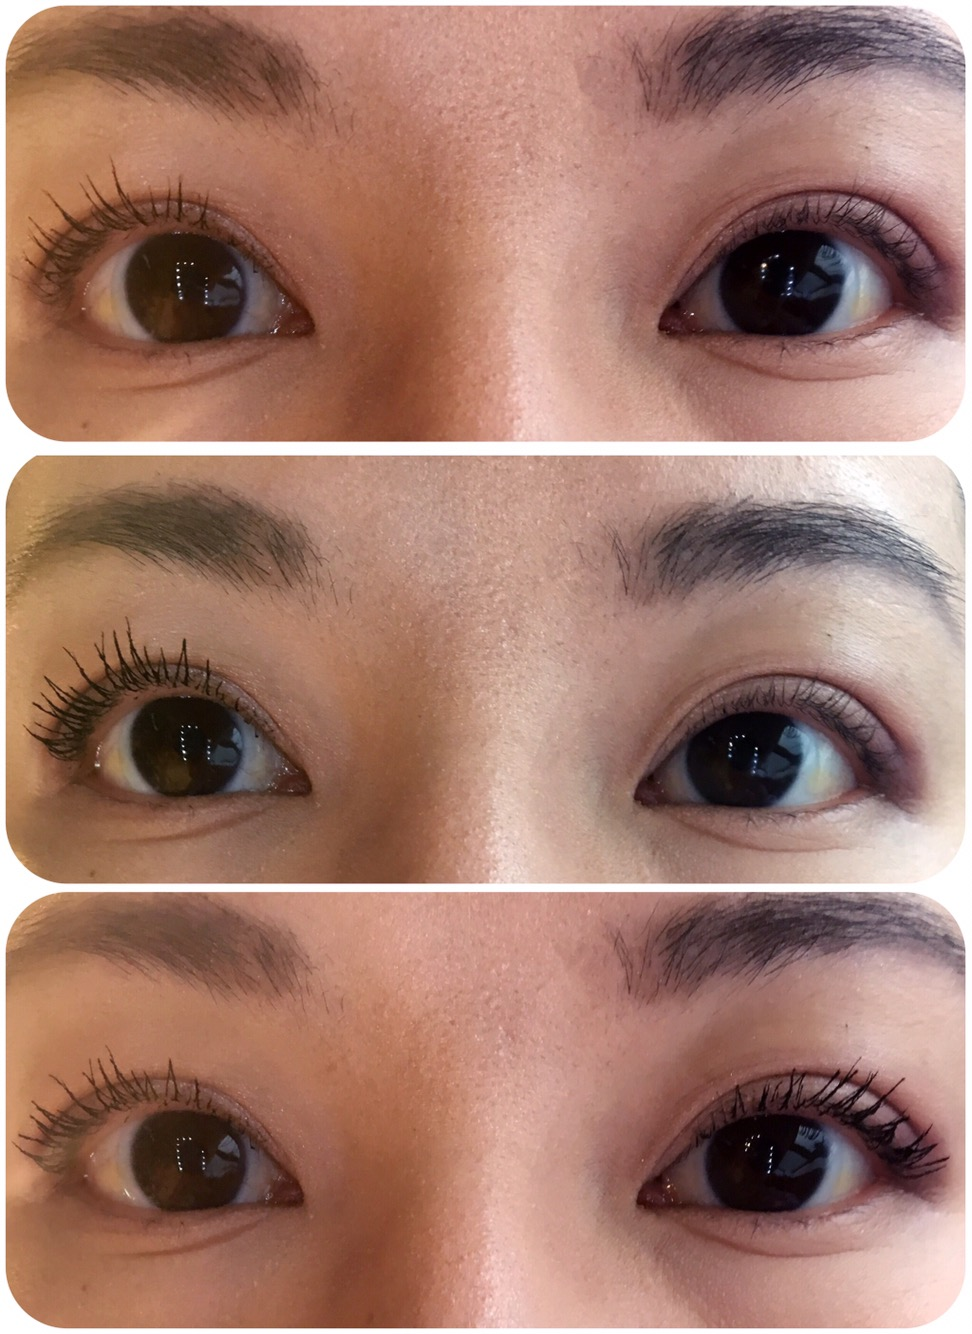 f4cc6b8e22e Top: 1 coat and natural lashes. Middle: 2 coats and natural lashes. Bottom:  2 coats to both eyes.